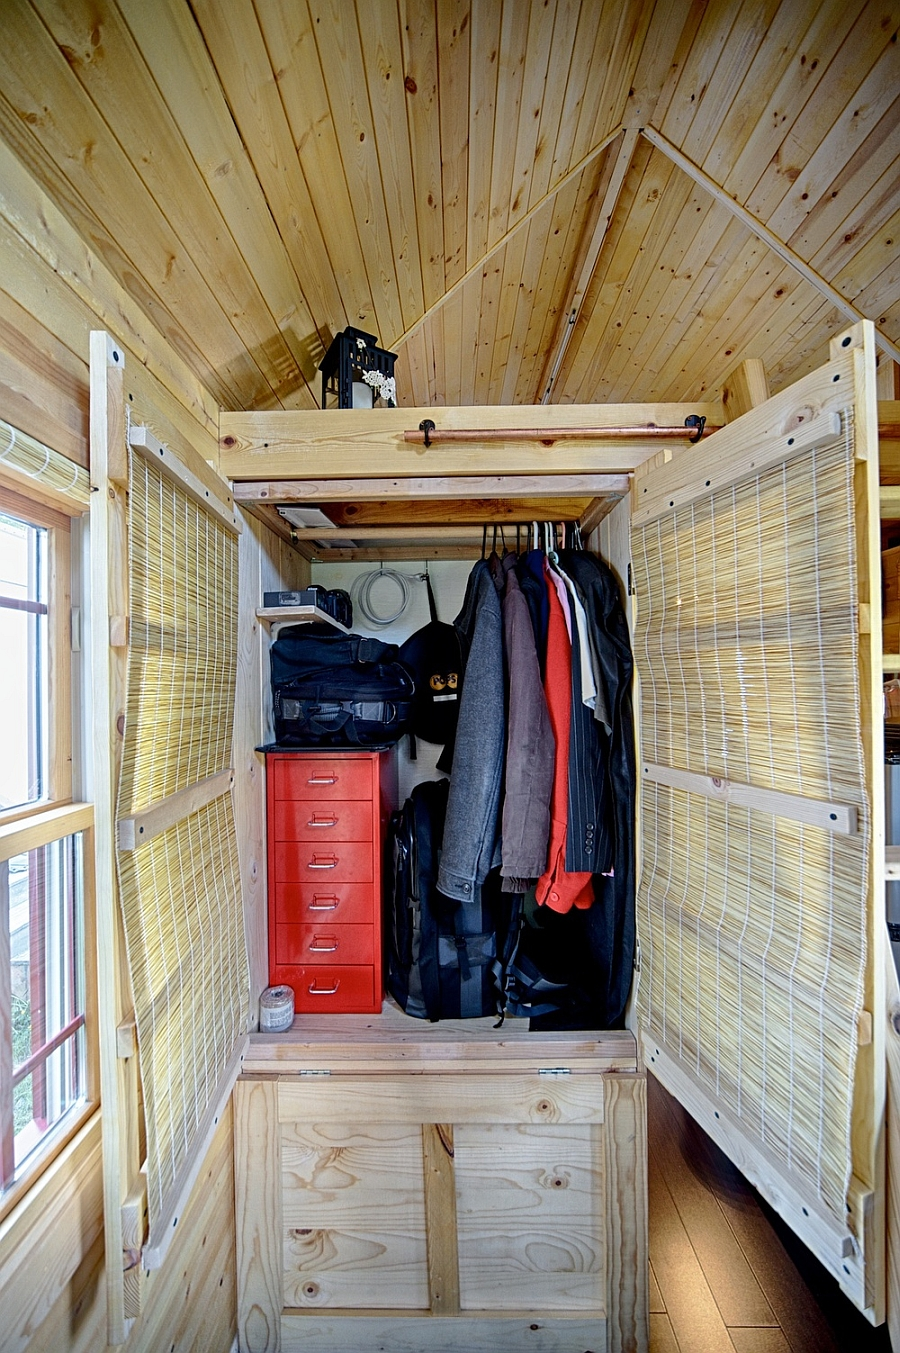 savvy wardrobe and storage area